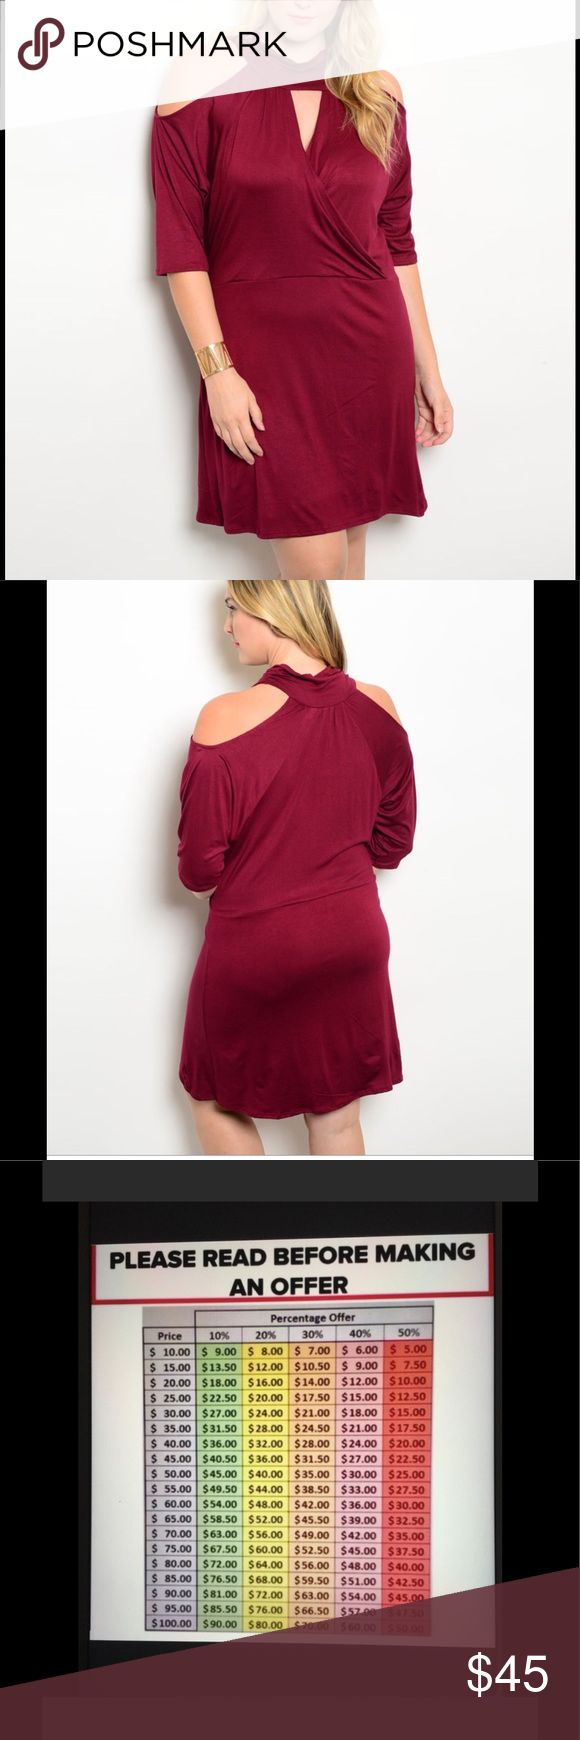 "Beautiful Burgundy peek a boo shoulder Plus Size Make yourself feel beautiful in this burgundy dress that has some great features. Shoulders exposed, with 3/4 sleeve. Criss cross neckline. Comfortable material for a night out. A must have for your closet! Variety of sizes! 050820179754565 Country: USA Fabric Content: 65% RAYON 35% VISCOSE Size Scale: 1XL-2XL-3XL Description: L: 39"" B: 46"" W: 42"" 1XL Dresses Mini"